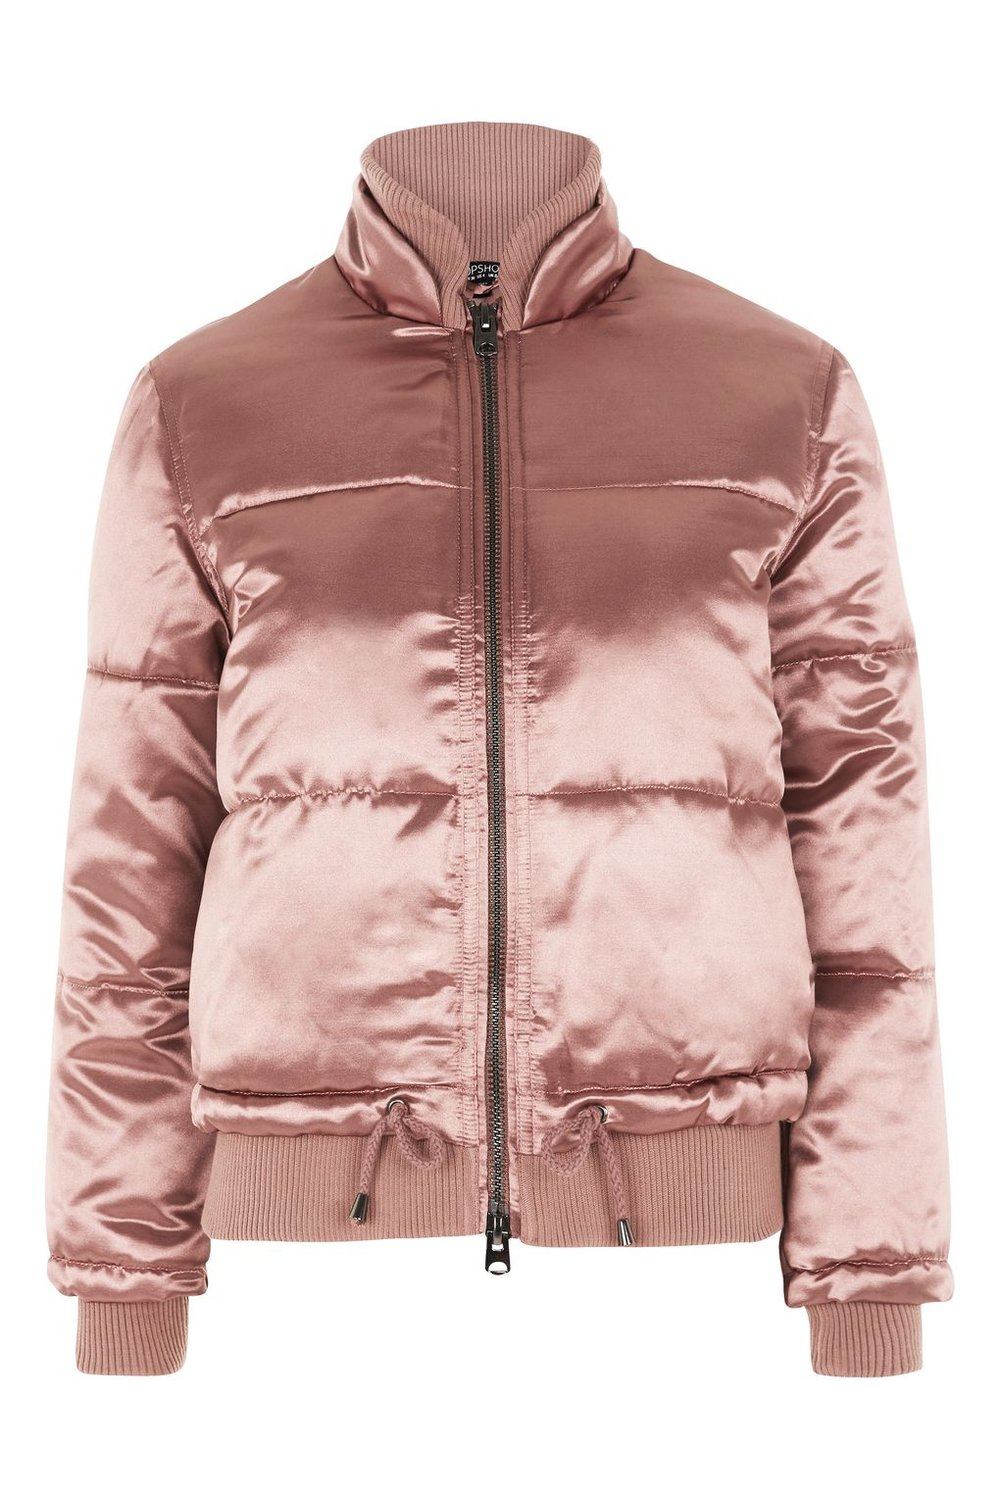 TOPSHOP QUILTED PINK PUFFER JACKET